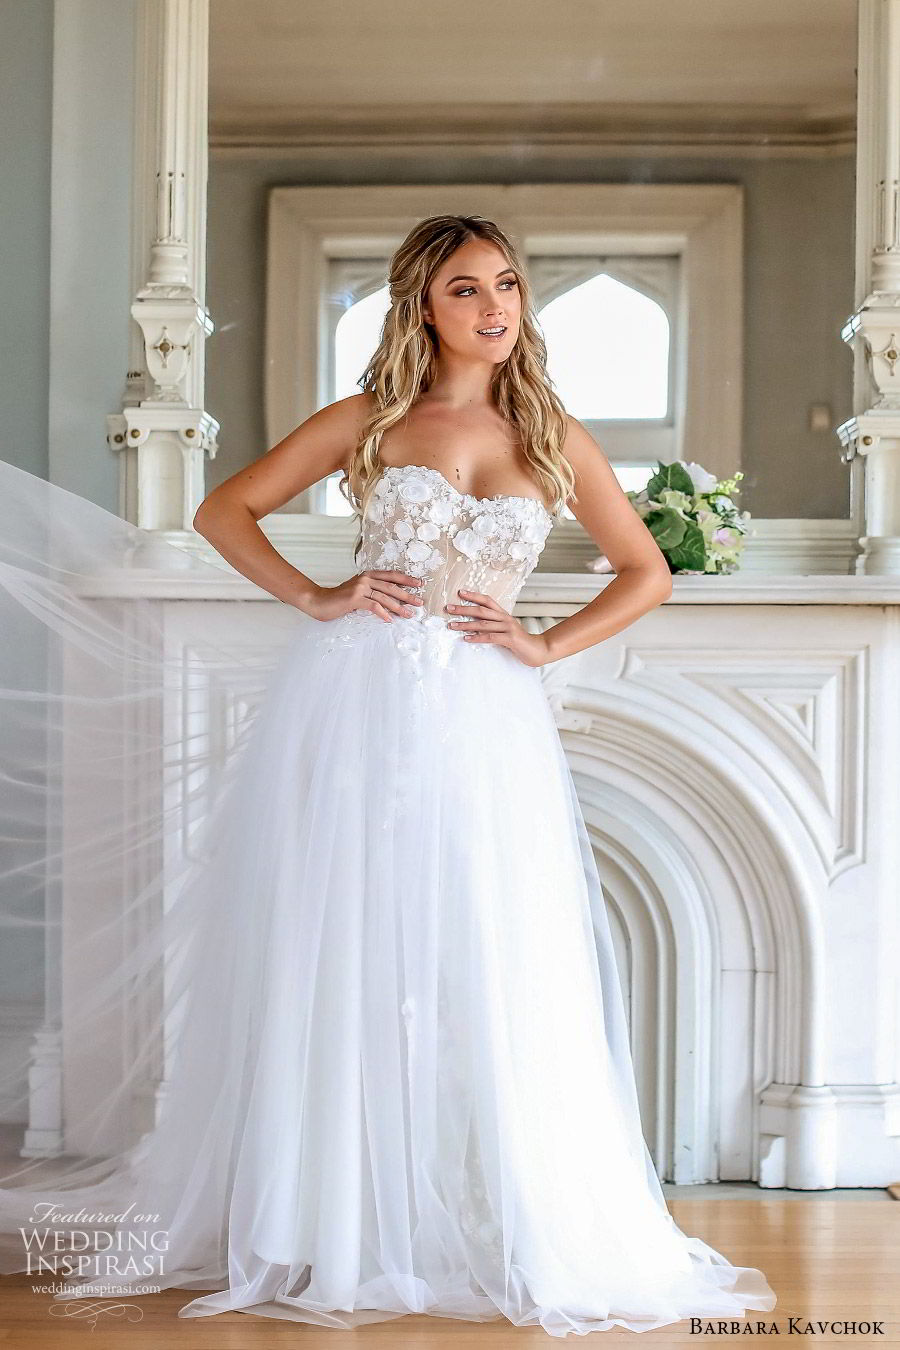 barbara kavchok fall 2019 bridal strapless sweetheart embellished bodice ball gown a line wedding drss (1) mv chapel train elegant romantic